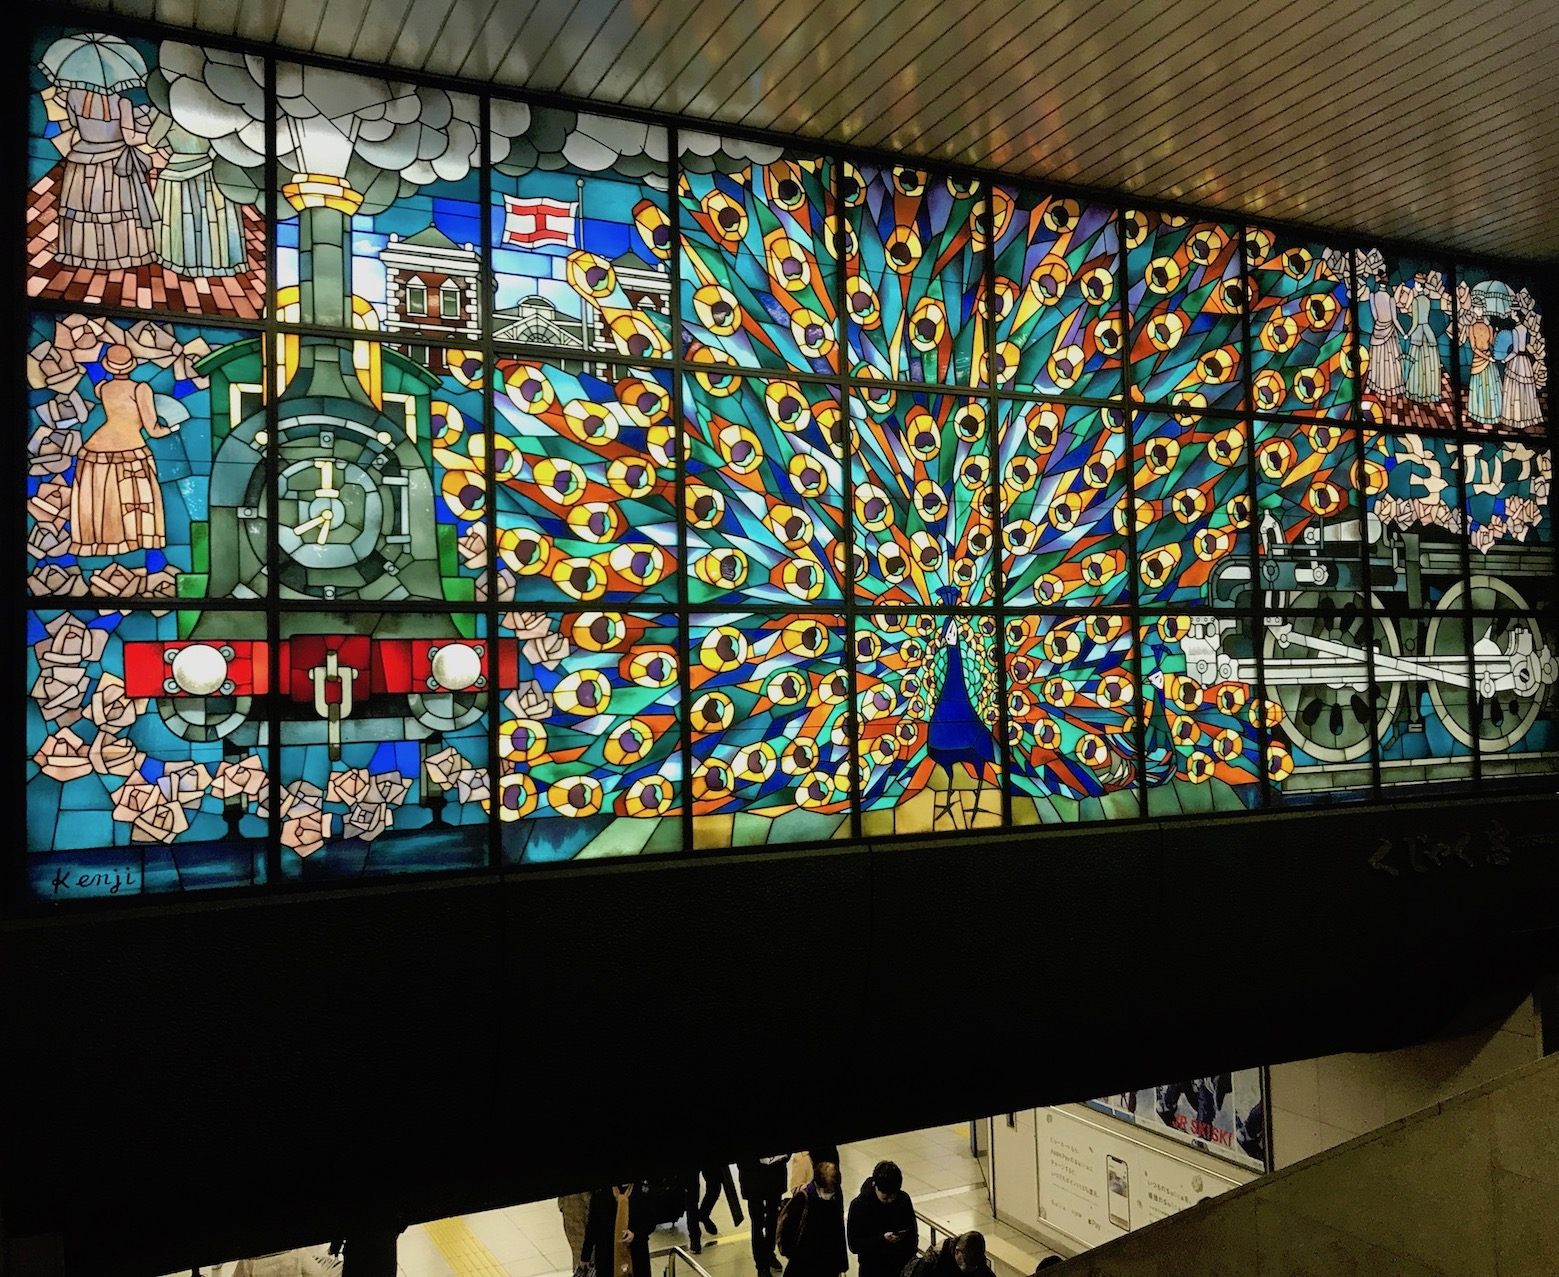 Peacock stained glass window Shiodome Station Tokyo Subway.